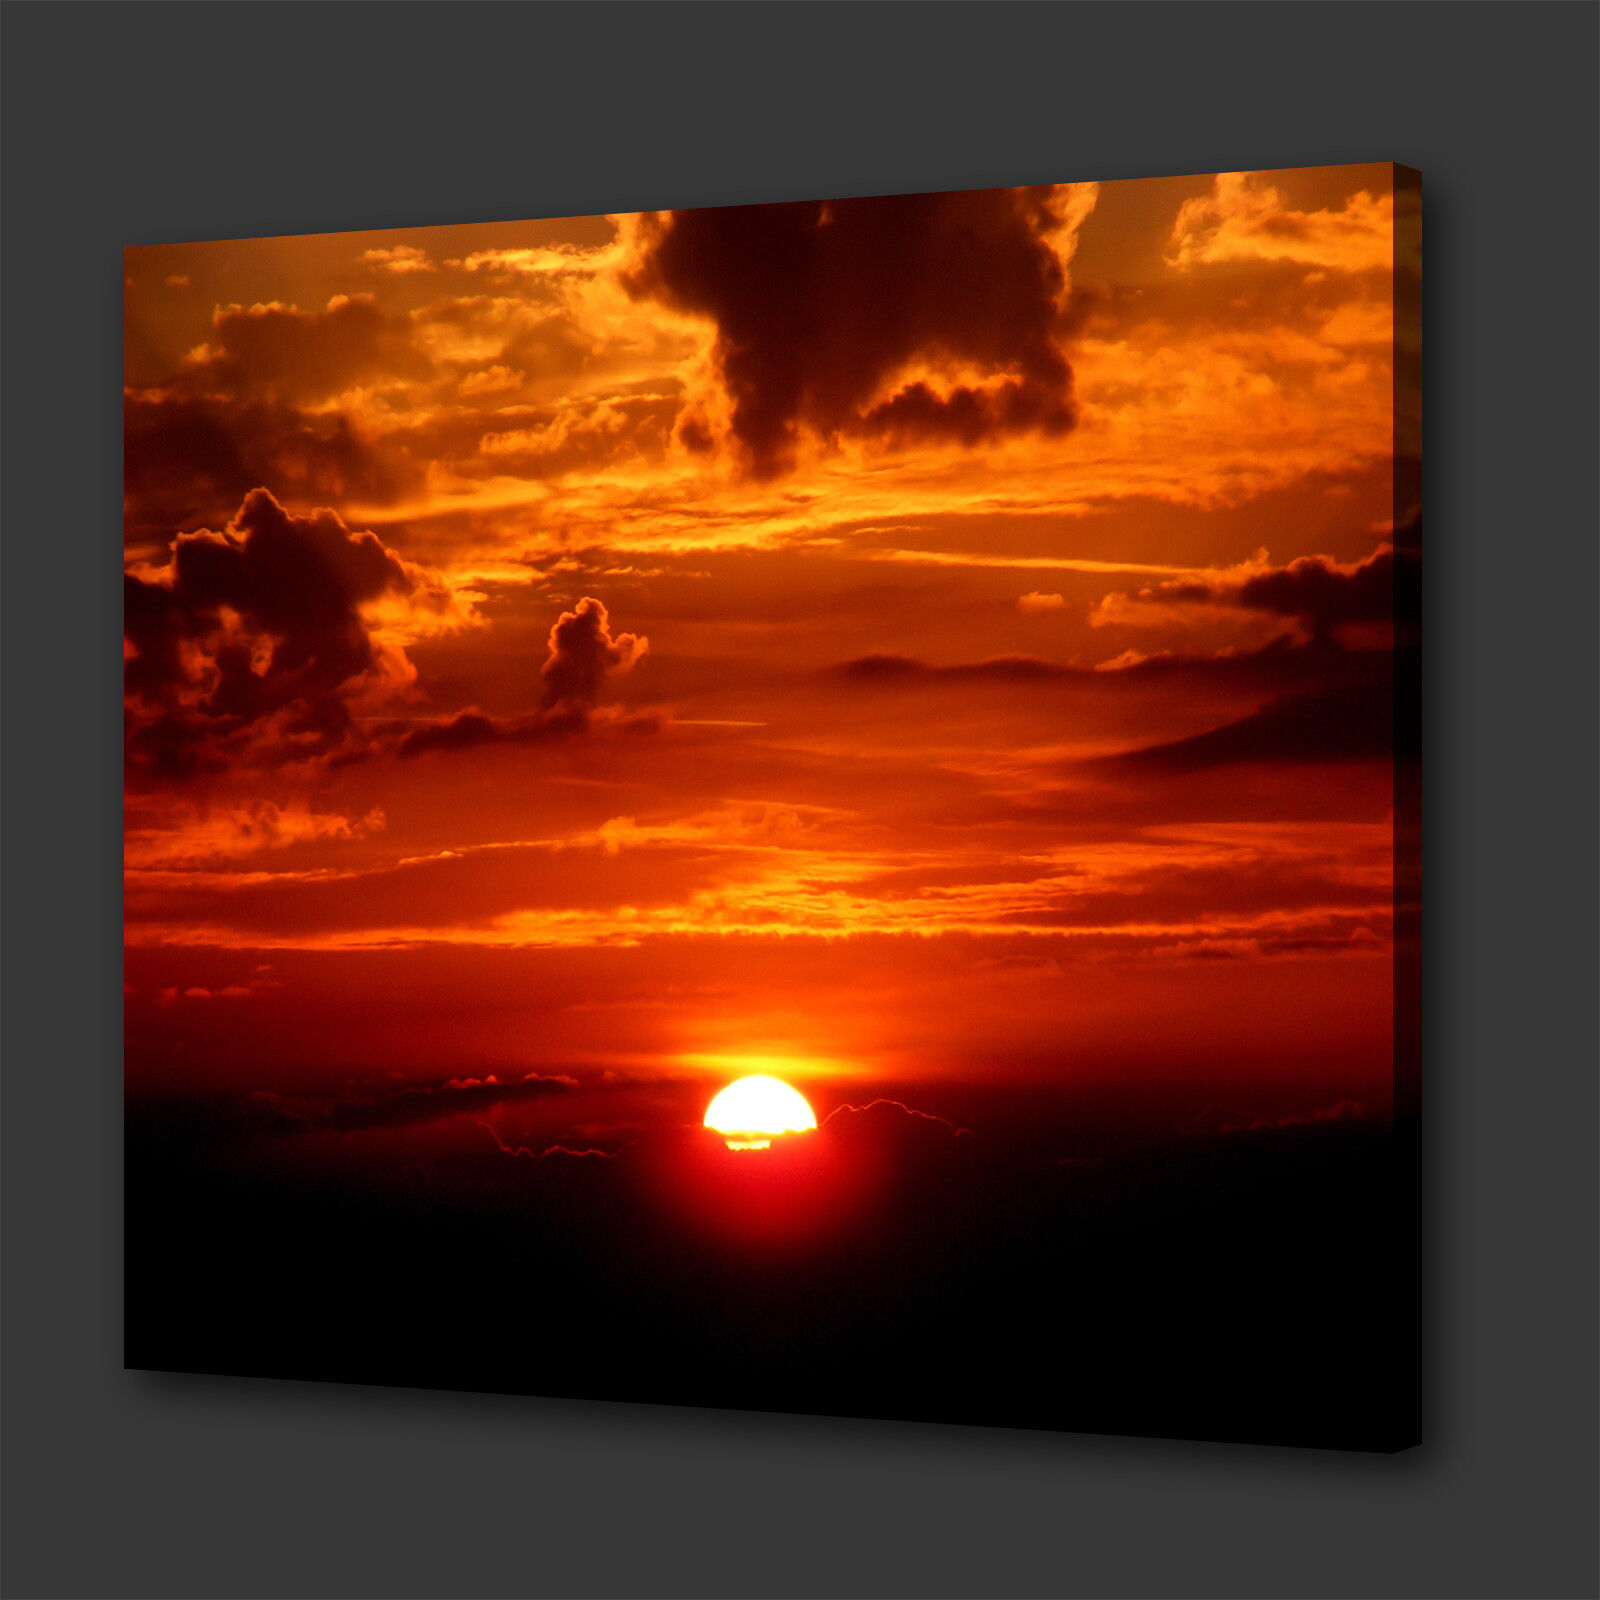 STUNNING VERY Orange SUNSET CLOUDS BOX CANVAS PRINT WALL ART PICTURE PHOTO